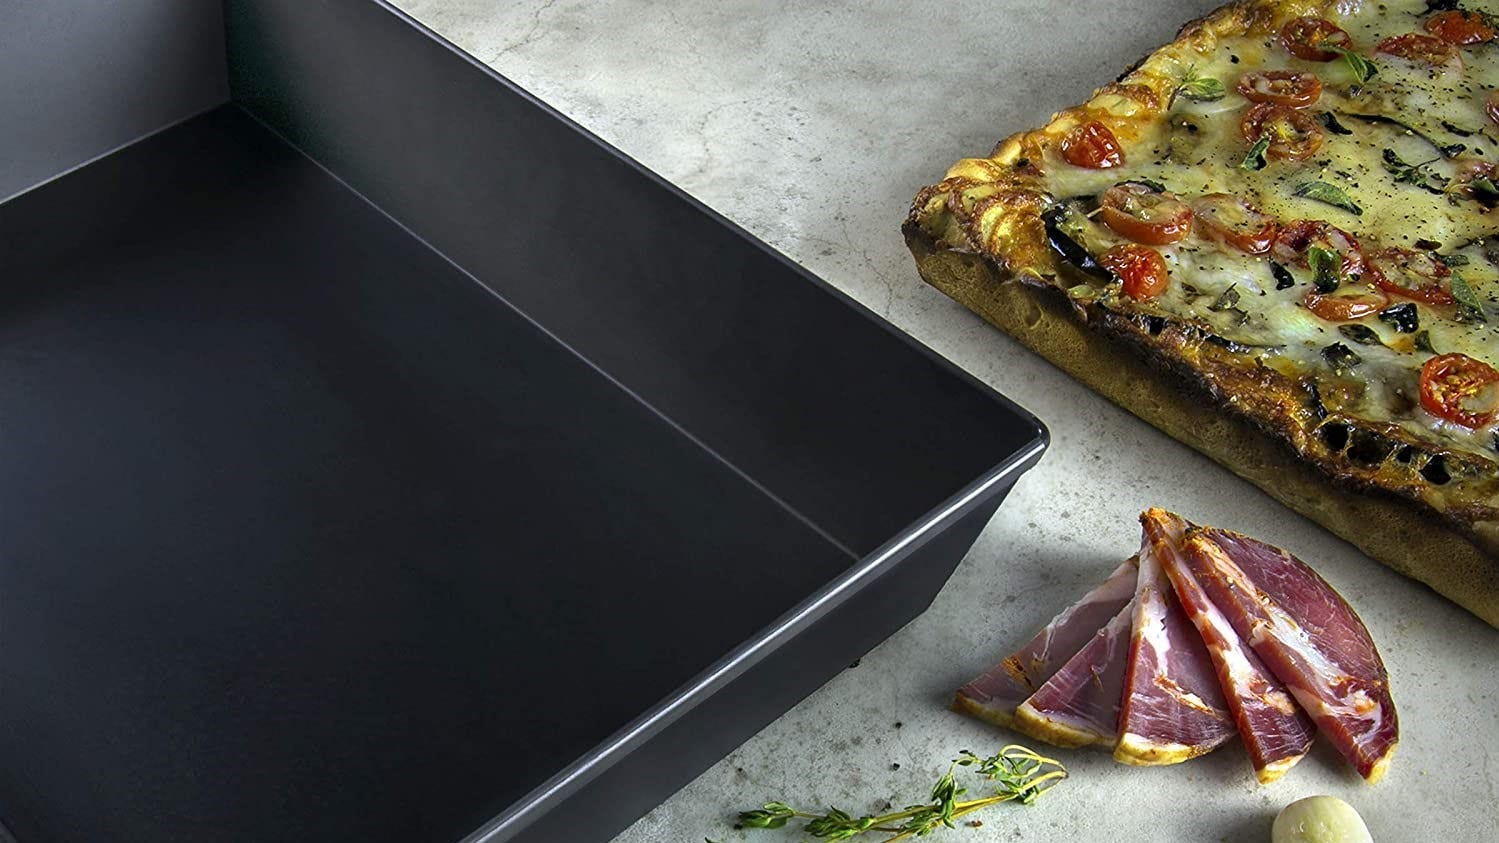 Detroit-style pizza pan next to a finished pizza and some random toppings.